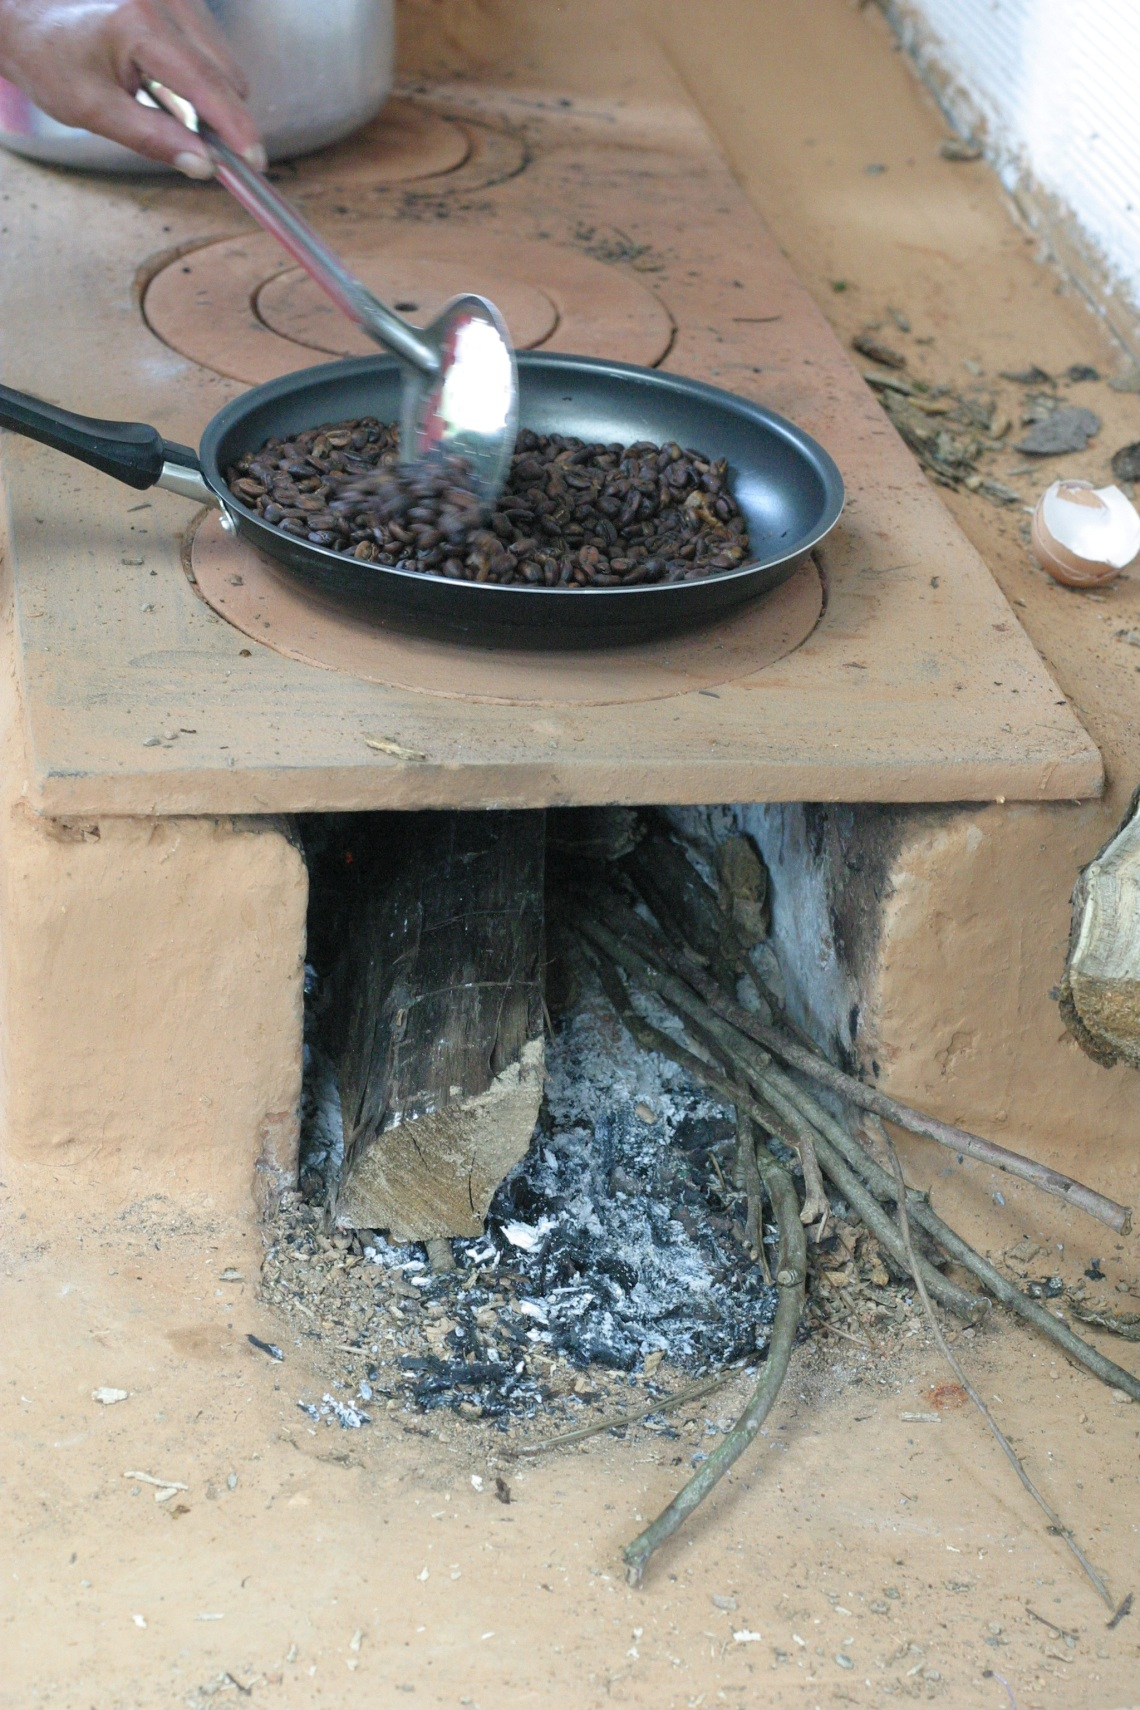 Fogon stove powered by coffee tree trunks